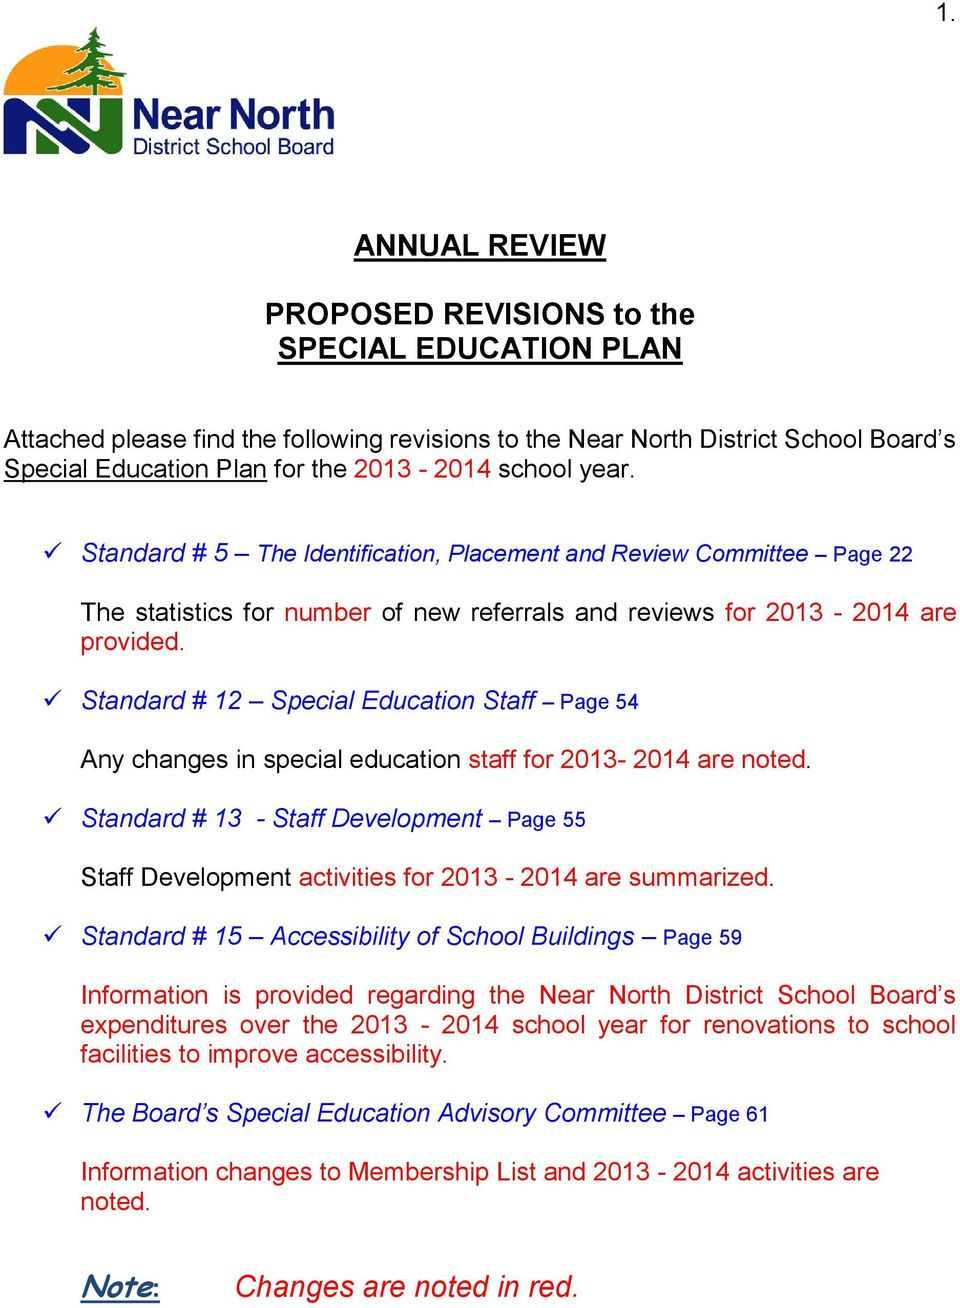 Standard # 12 Special Education Staff Page 54 Any changes in special education staff for 2013-2014 are noted.